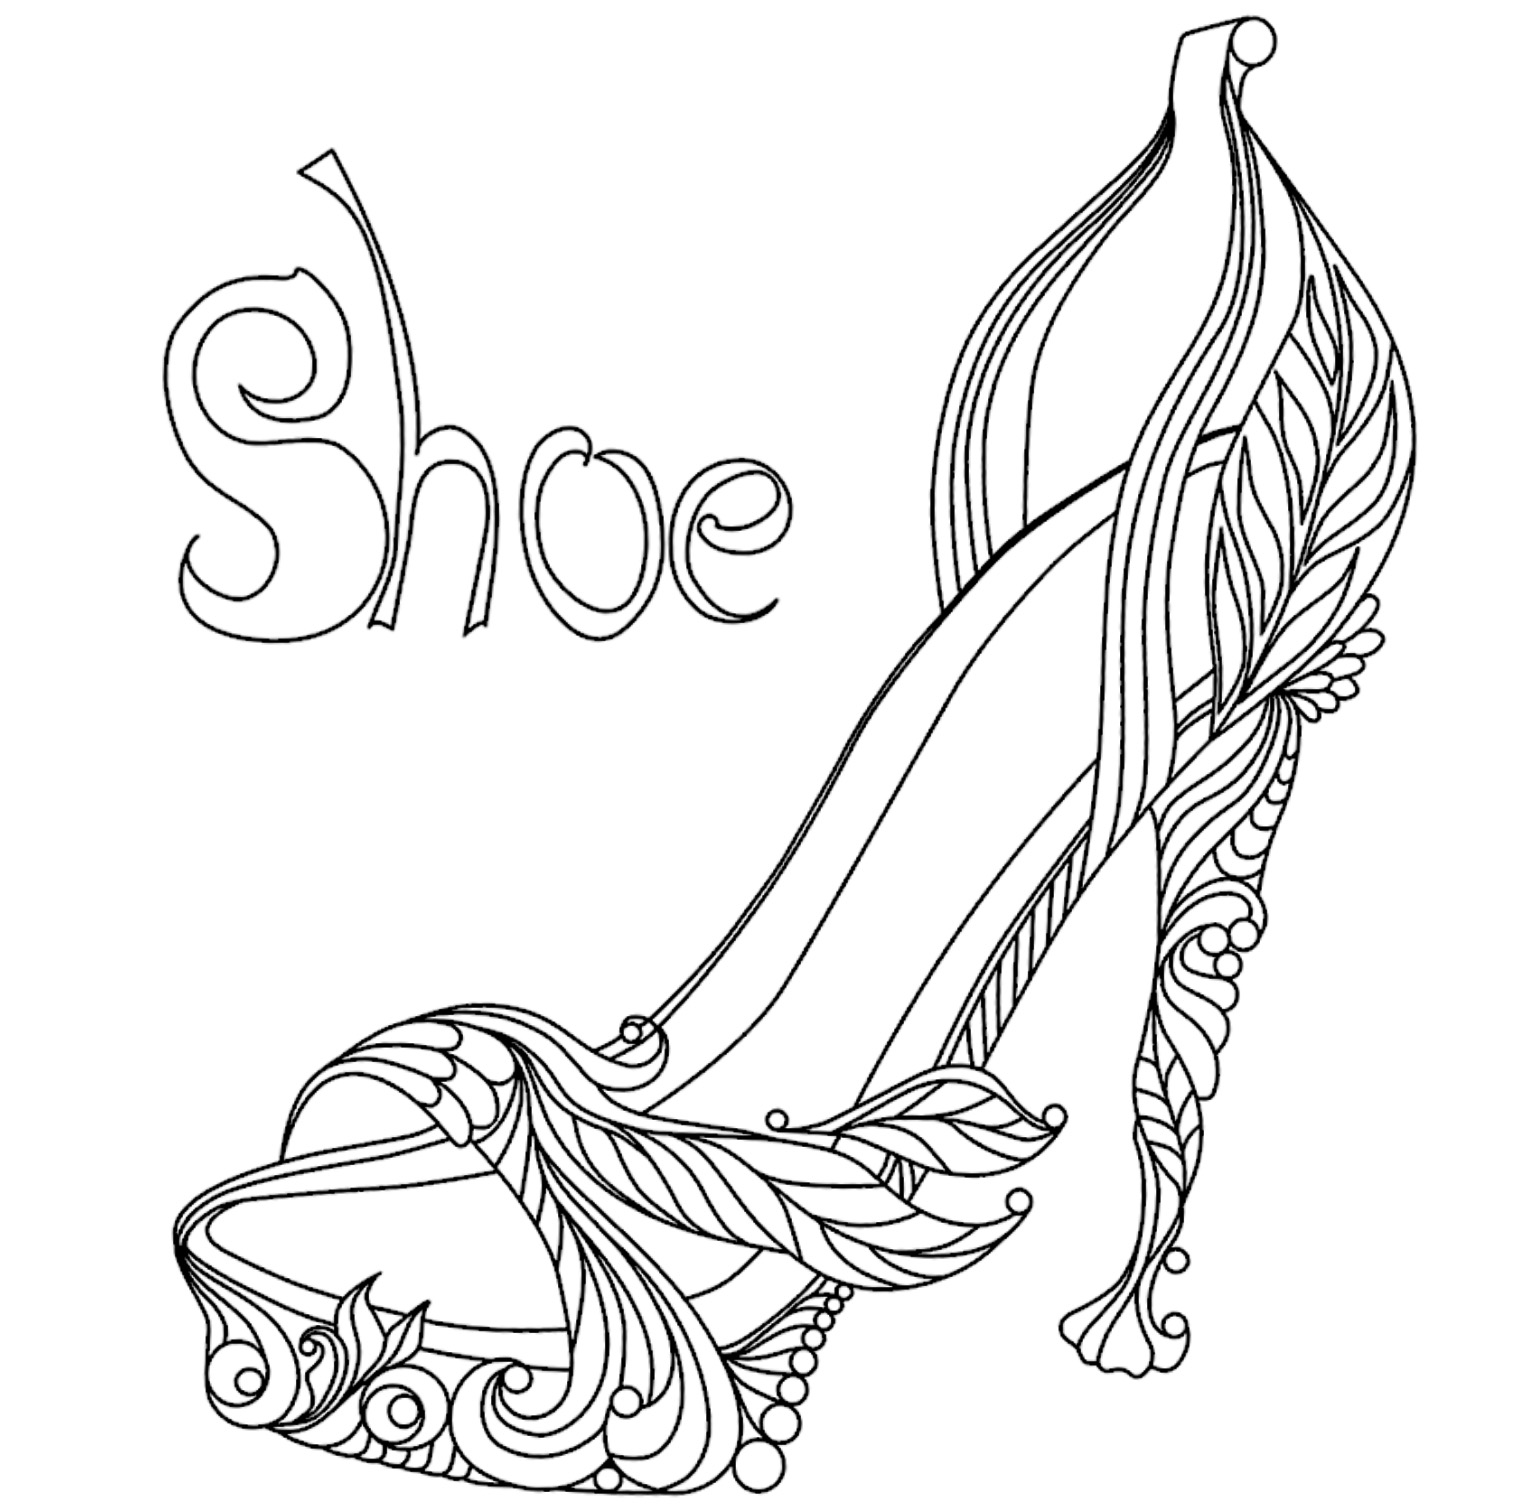 shoe color page coloring pages running shoes best of converse shoe color shoe page